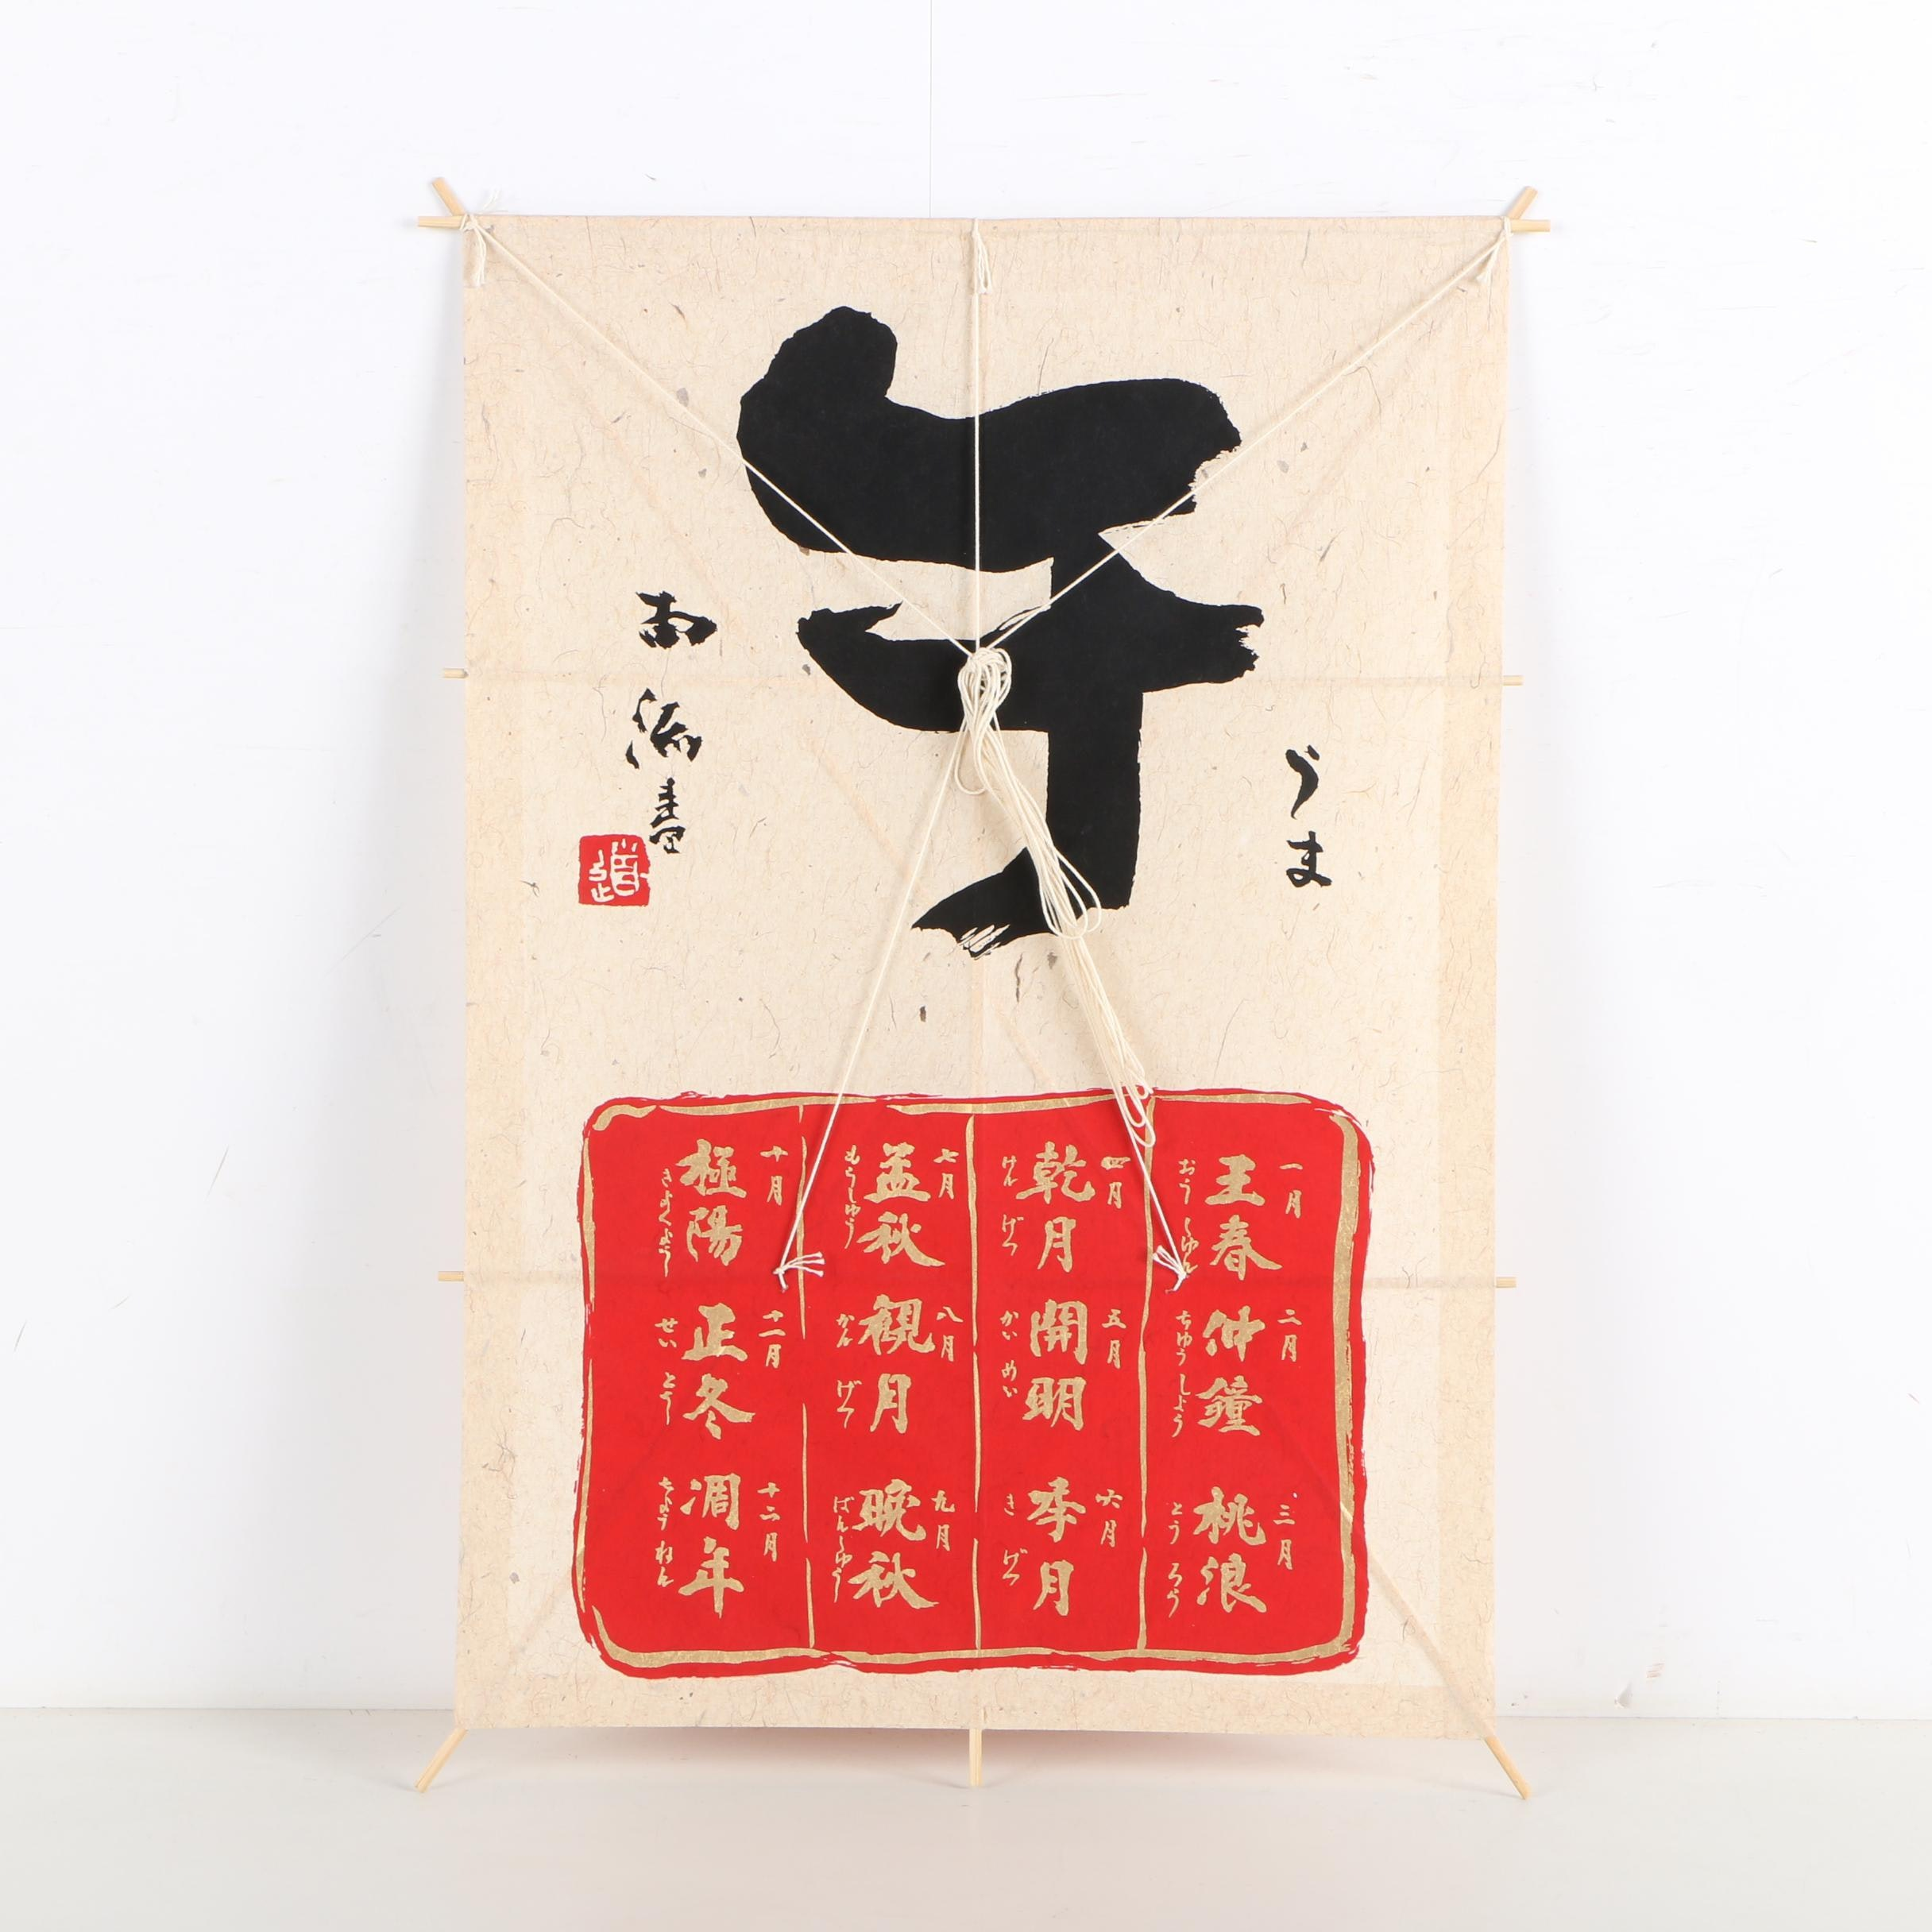 Japanese Kite with Calligraphy